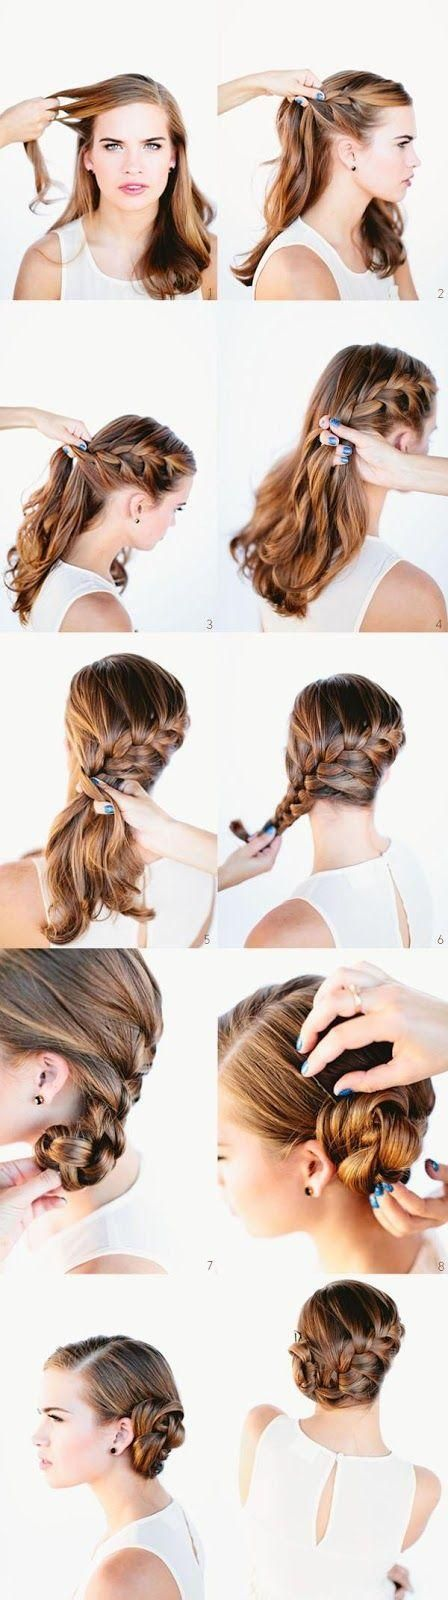 Hair tips and ideas :DIY Braided Hair: DIY  Braided Hair